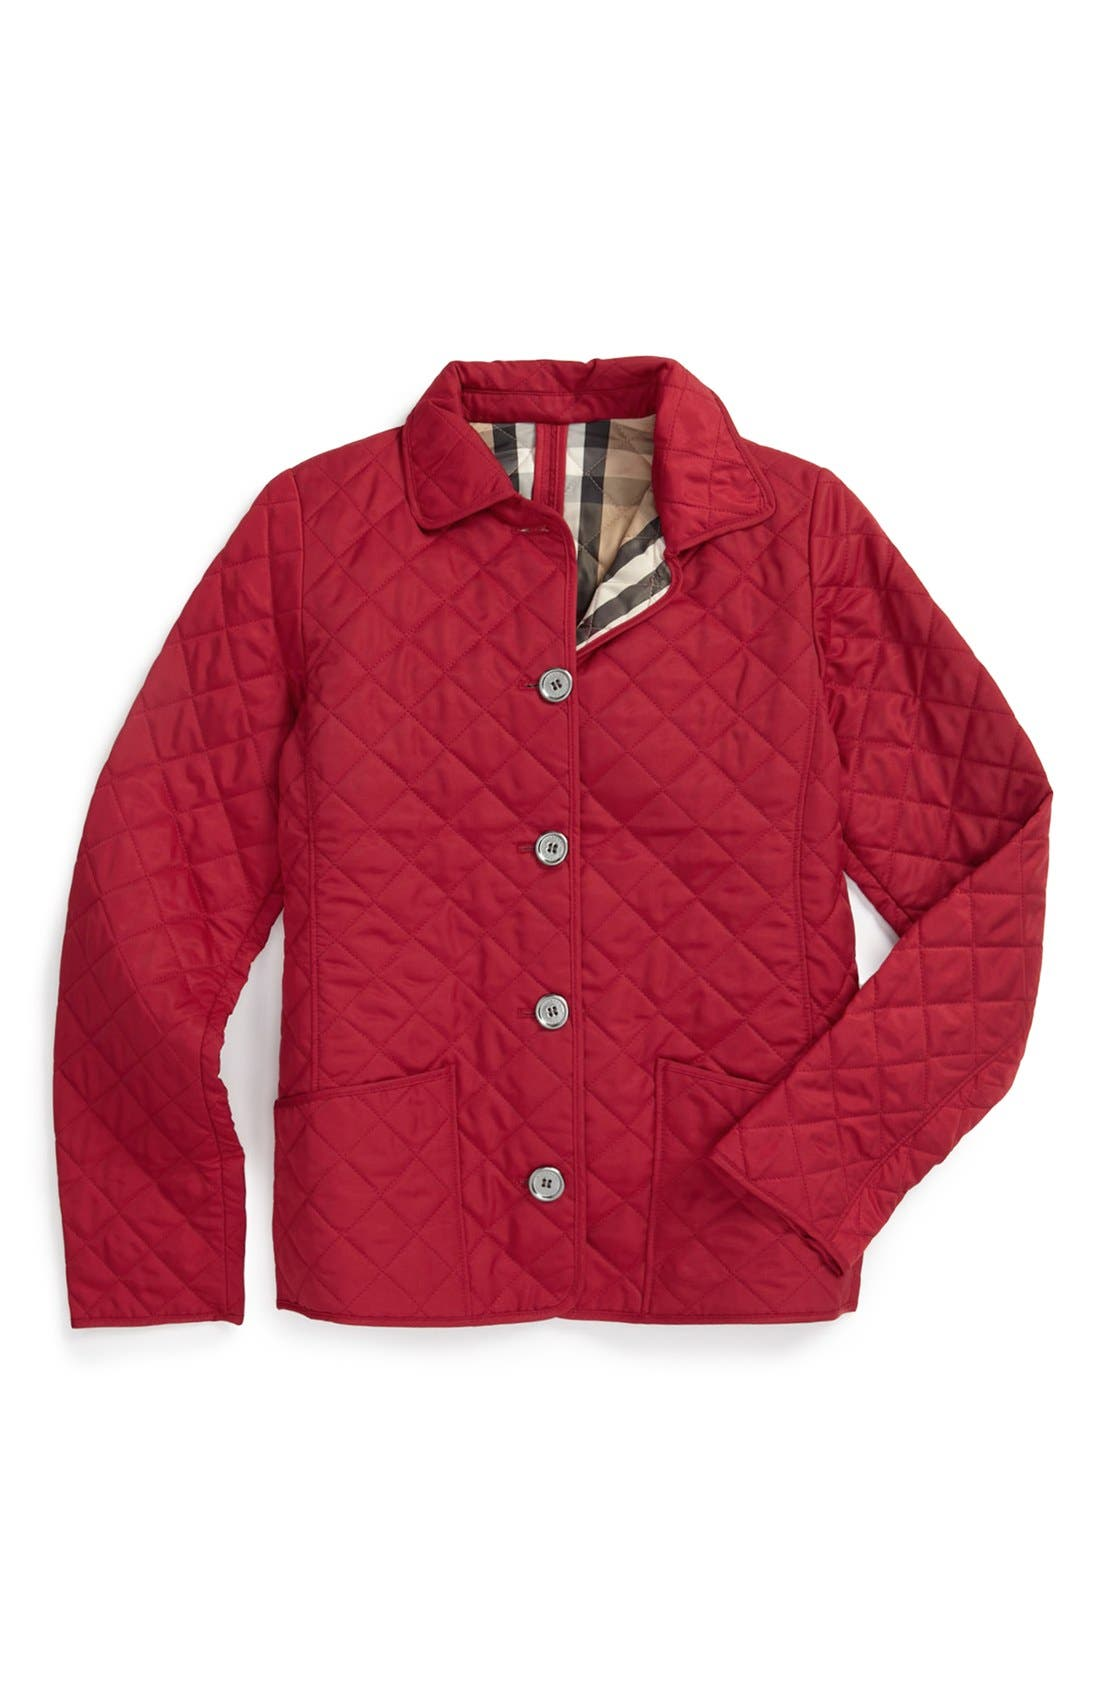 Alternate Image 1 Selected - Burberry Quilted Check Trim Coat (Little Girls)